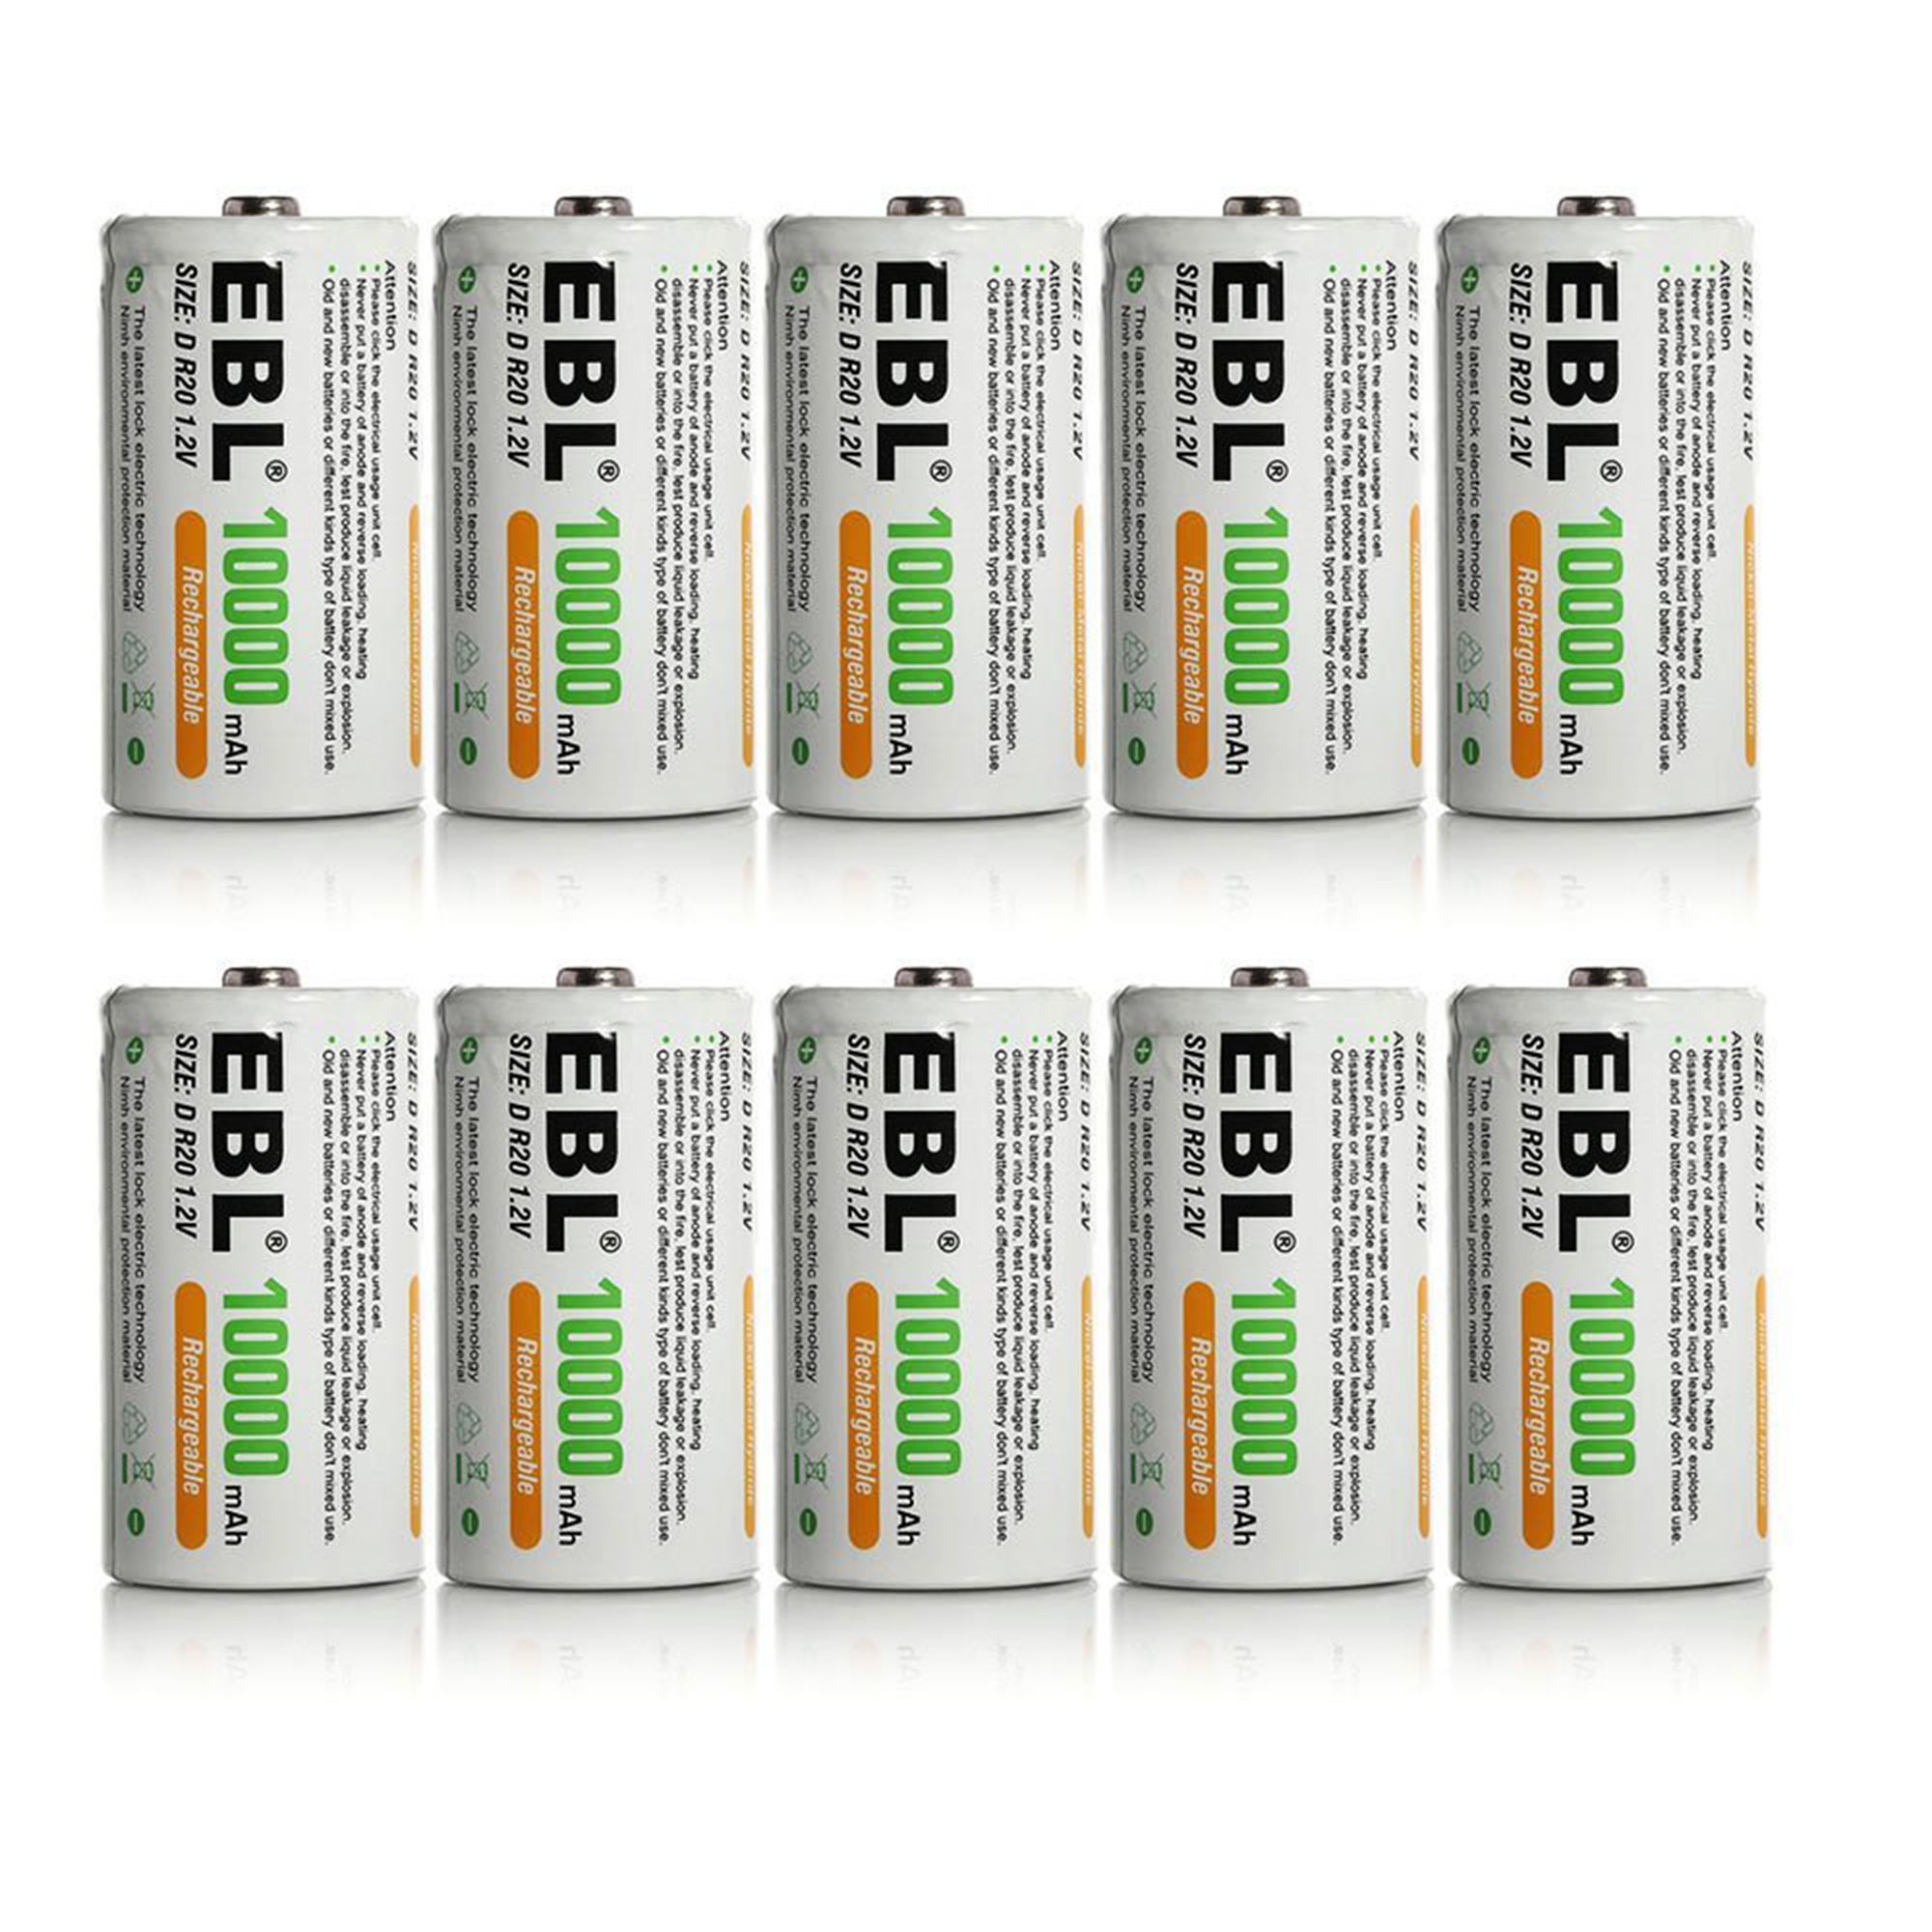 EBL 10-Pack 1.2v Size D Battery 10000mAh Ni-MH Rechargeable Batteries